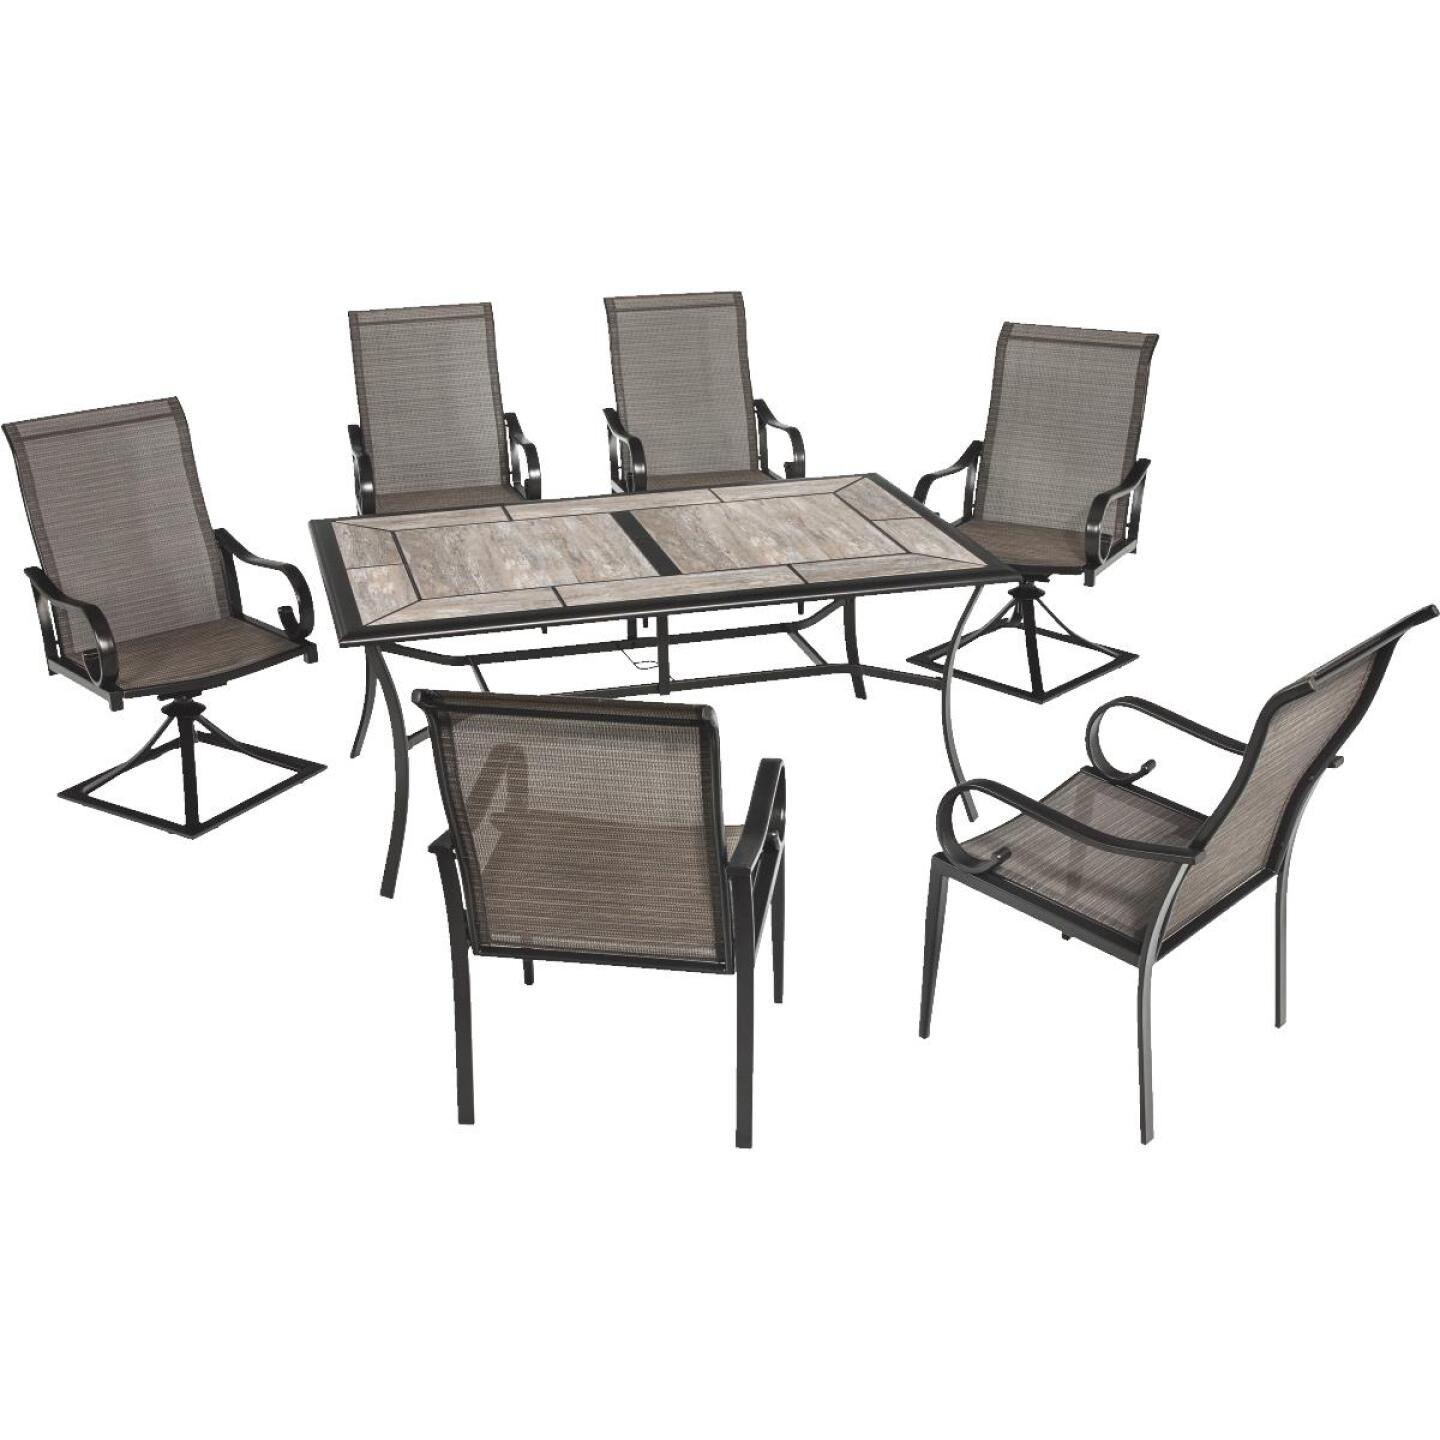 Outdoor Expressions Berkshire 7-Piece Dining Set Image 55